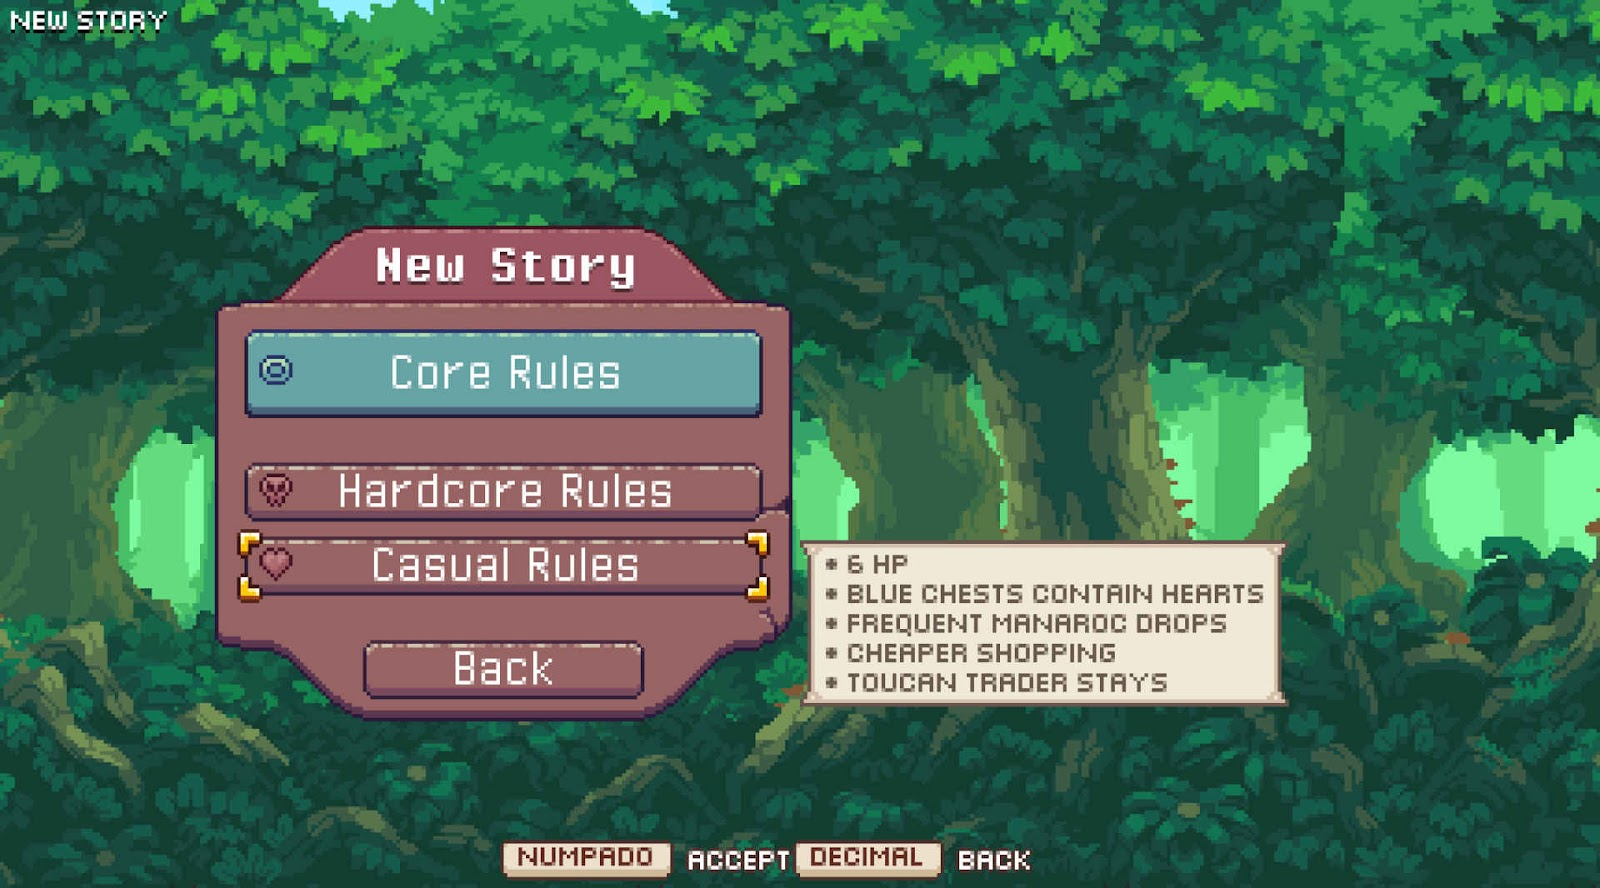 The main menu showing three difficulty levels.